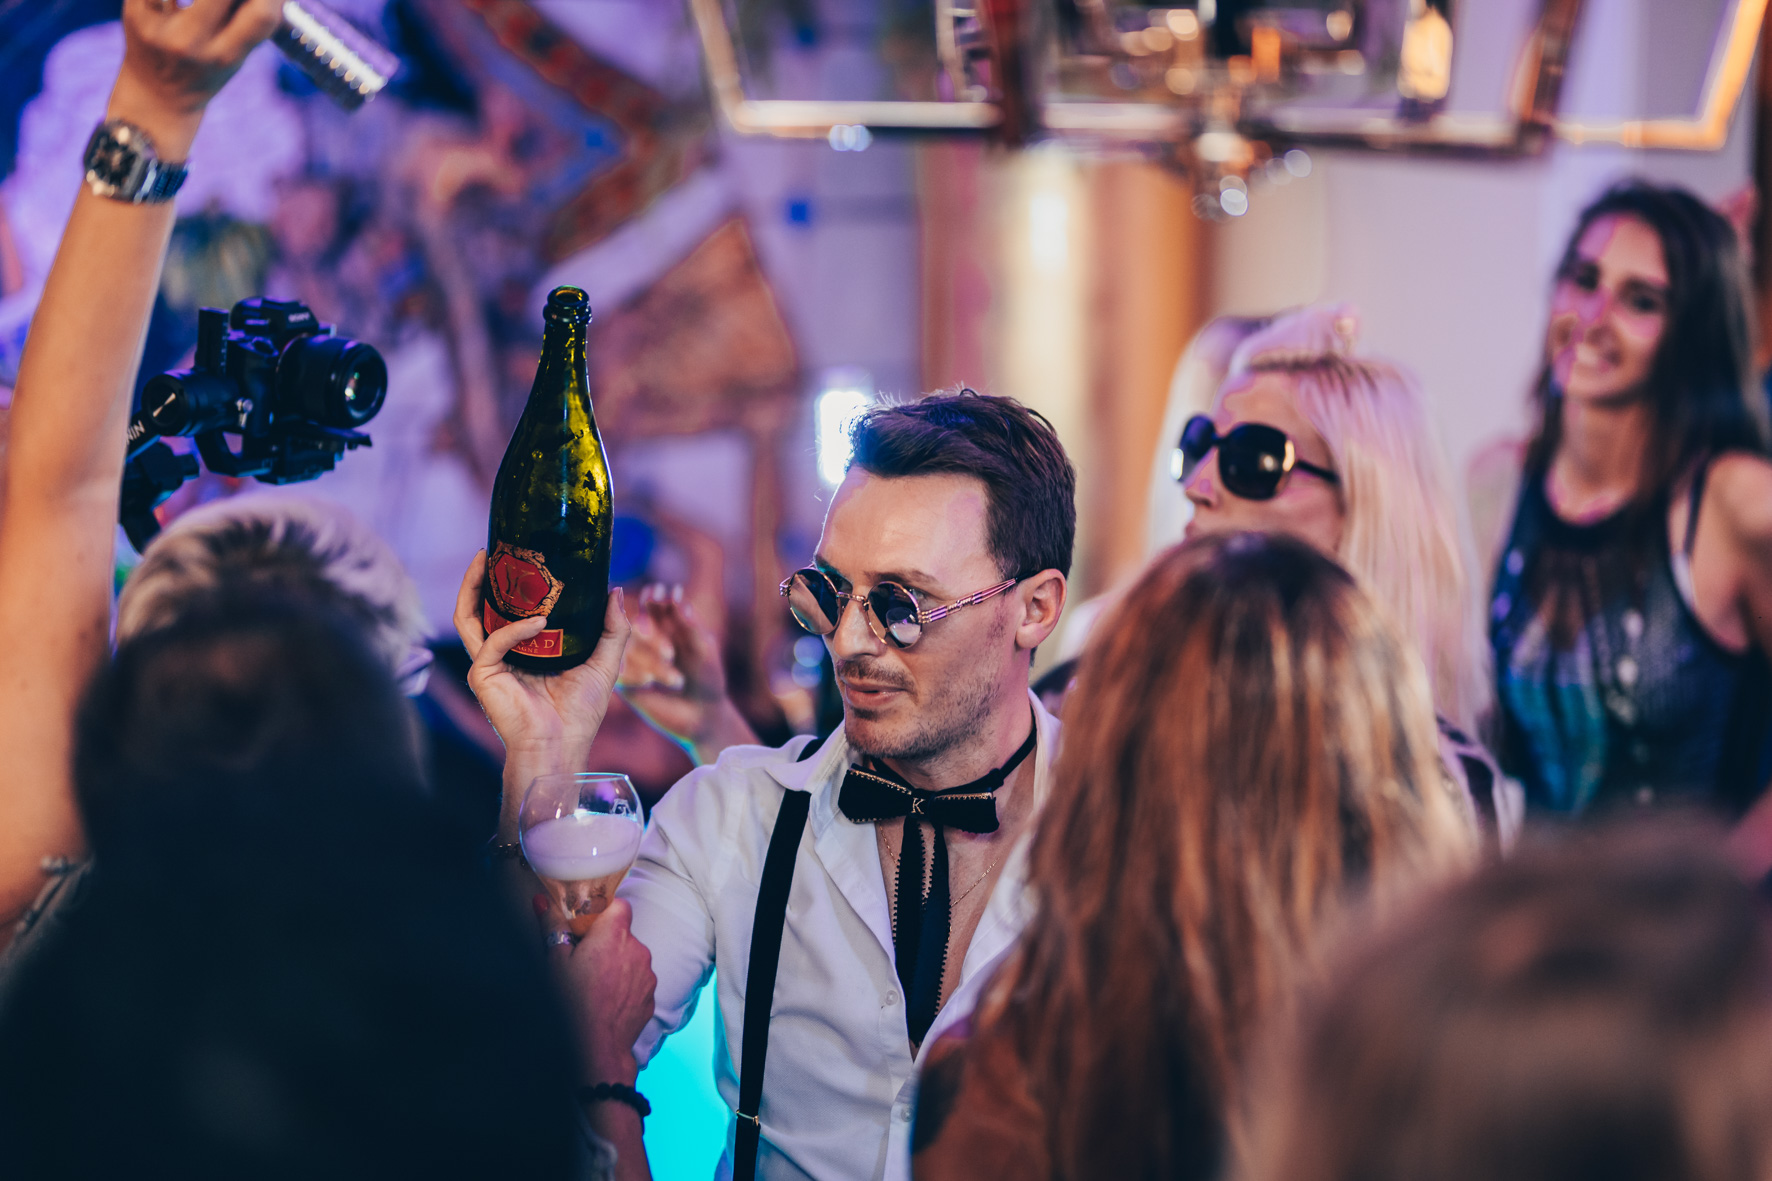 Konrad-lifestyle-art-basel-%22belvedere-secret-sunday%22-2019-83.jpg